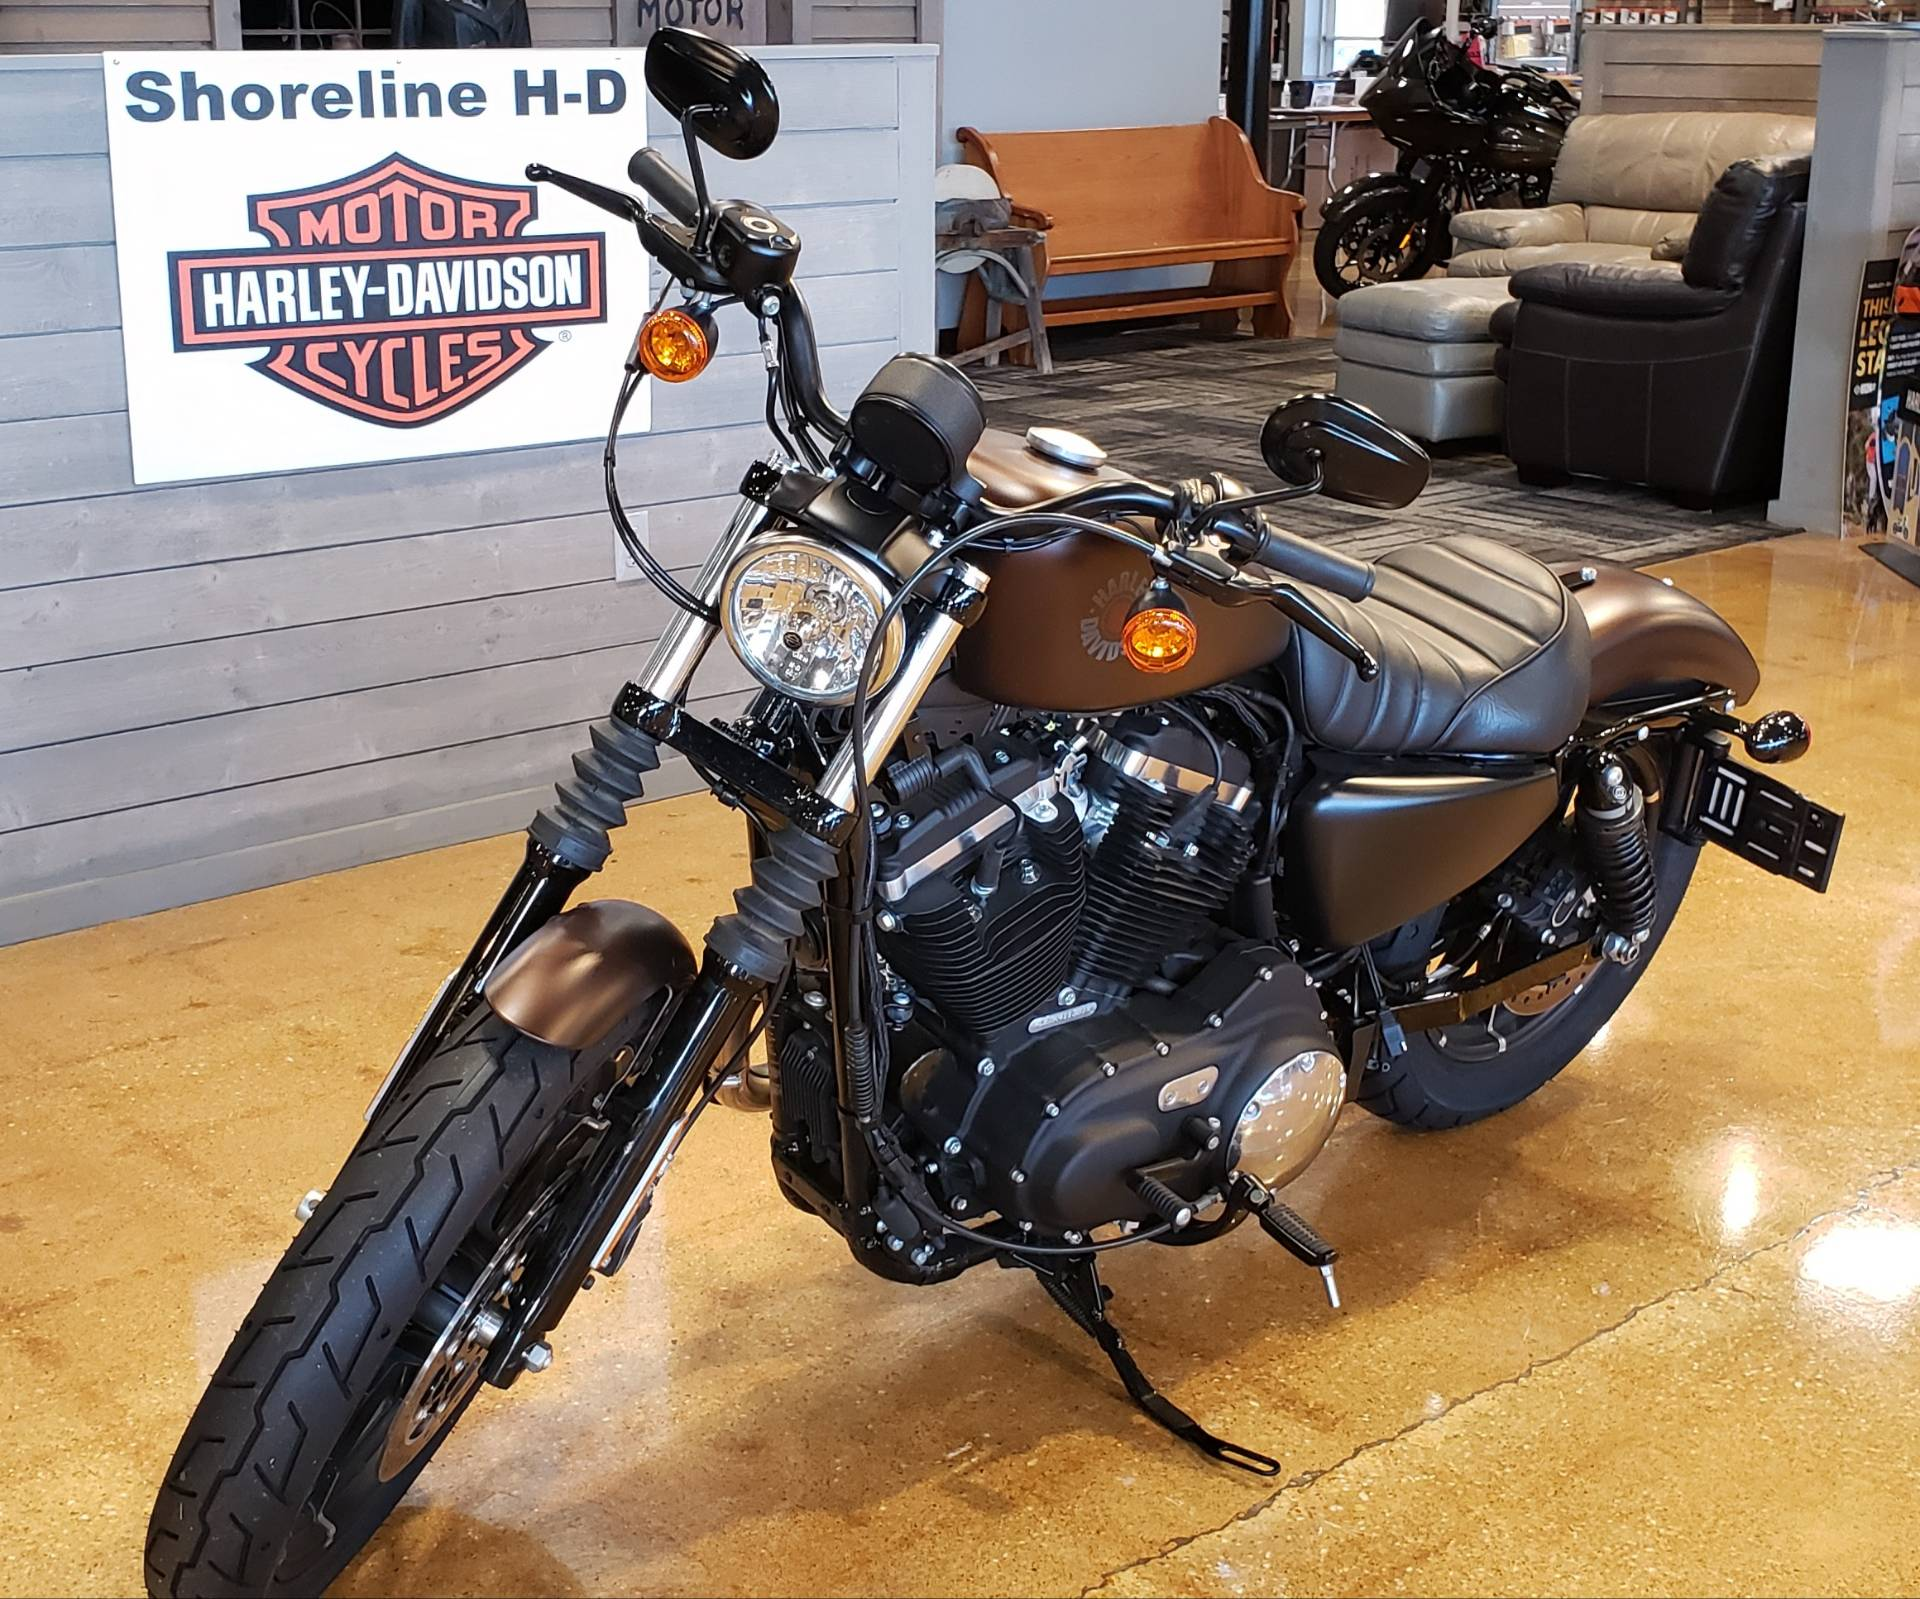 2019 Harley-Davidson IRON 883 in West Long Branch, New Jersey - Photo 5